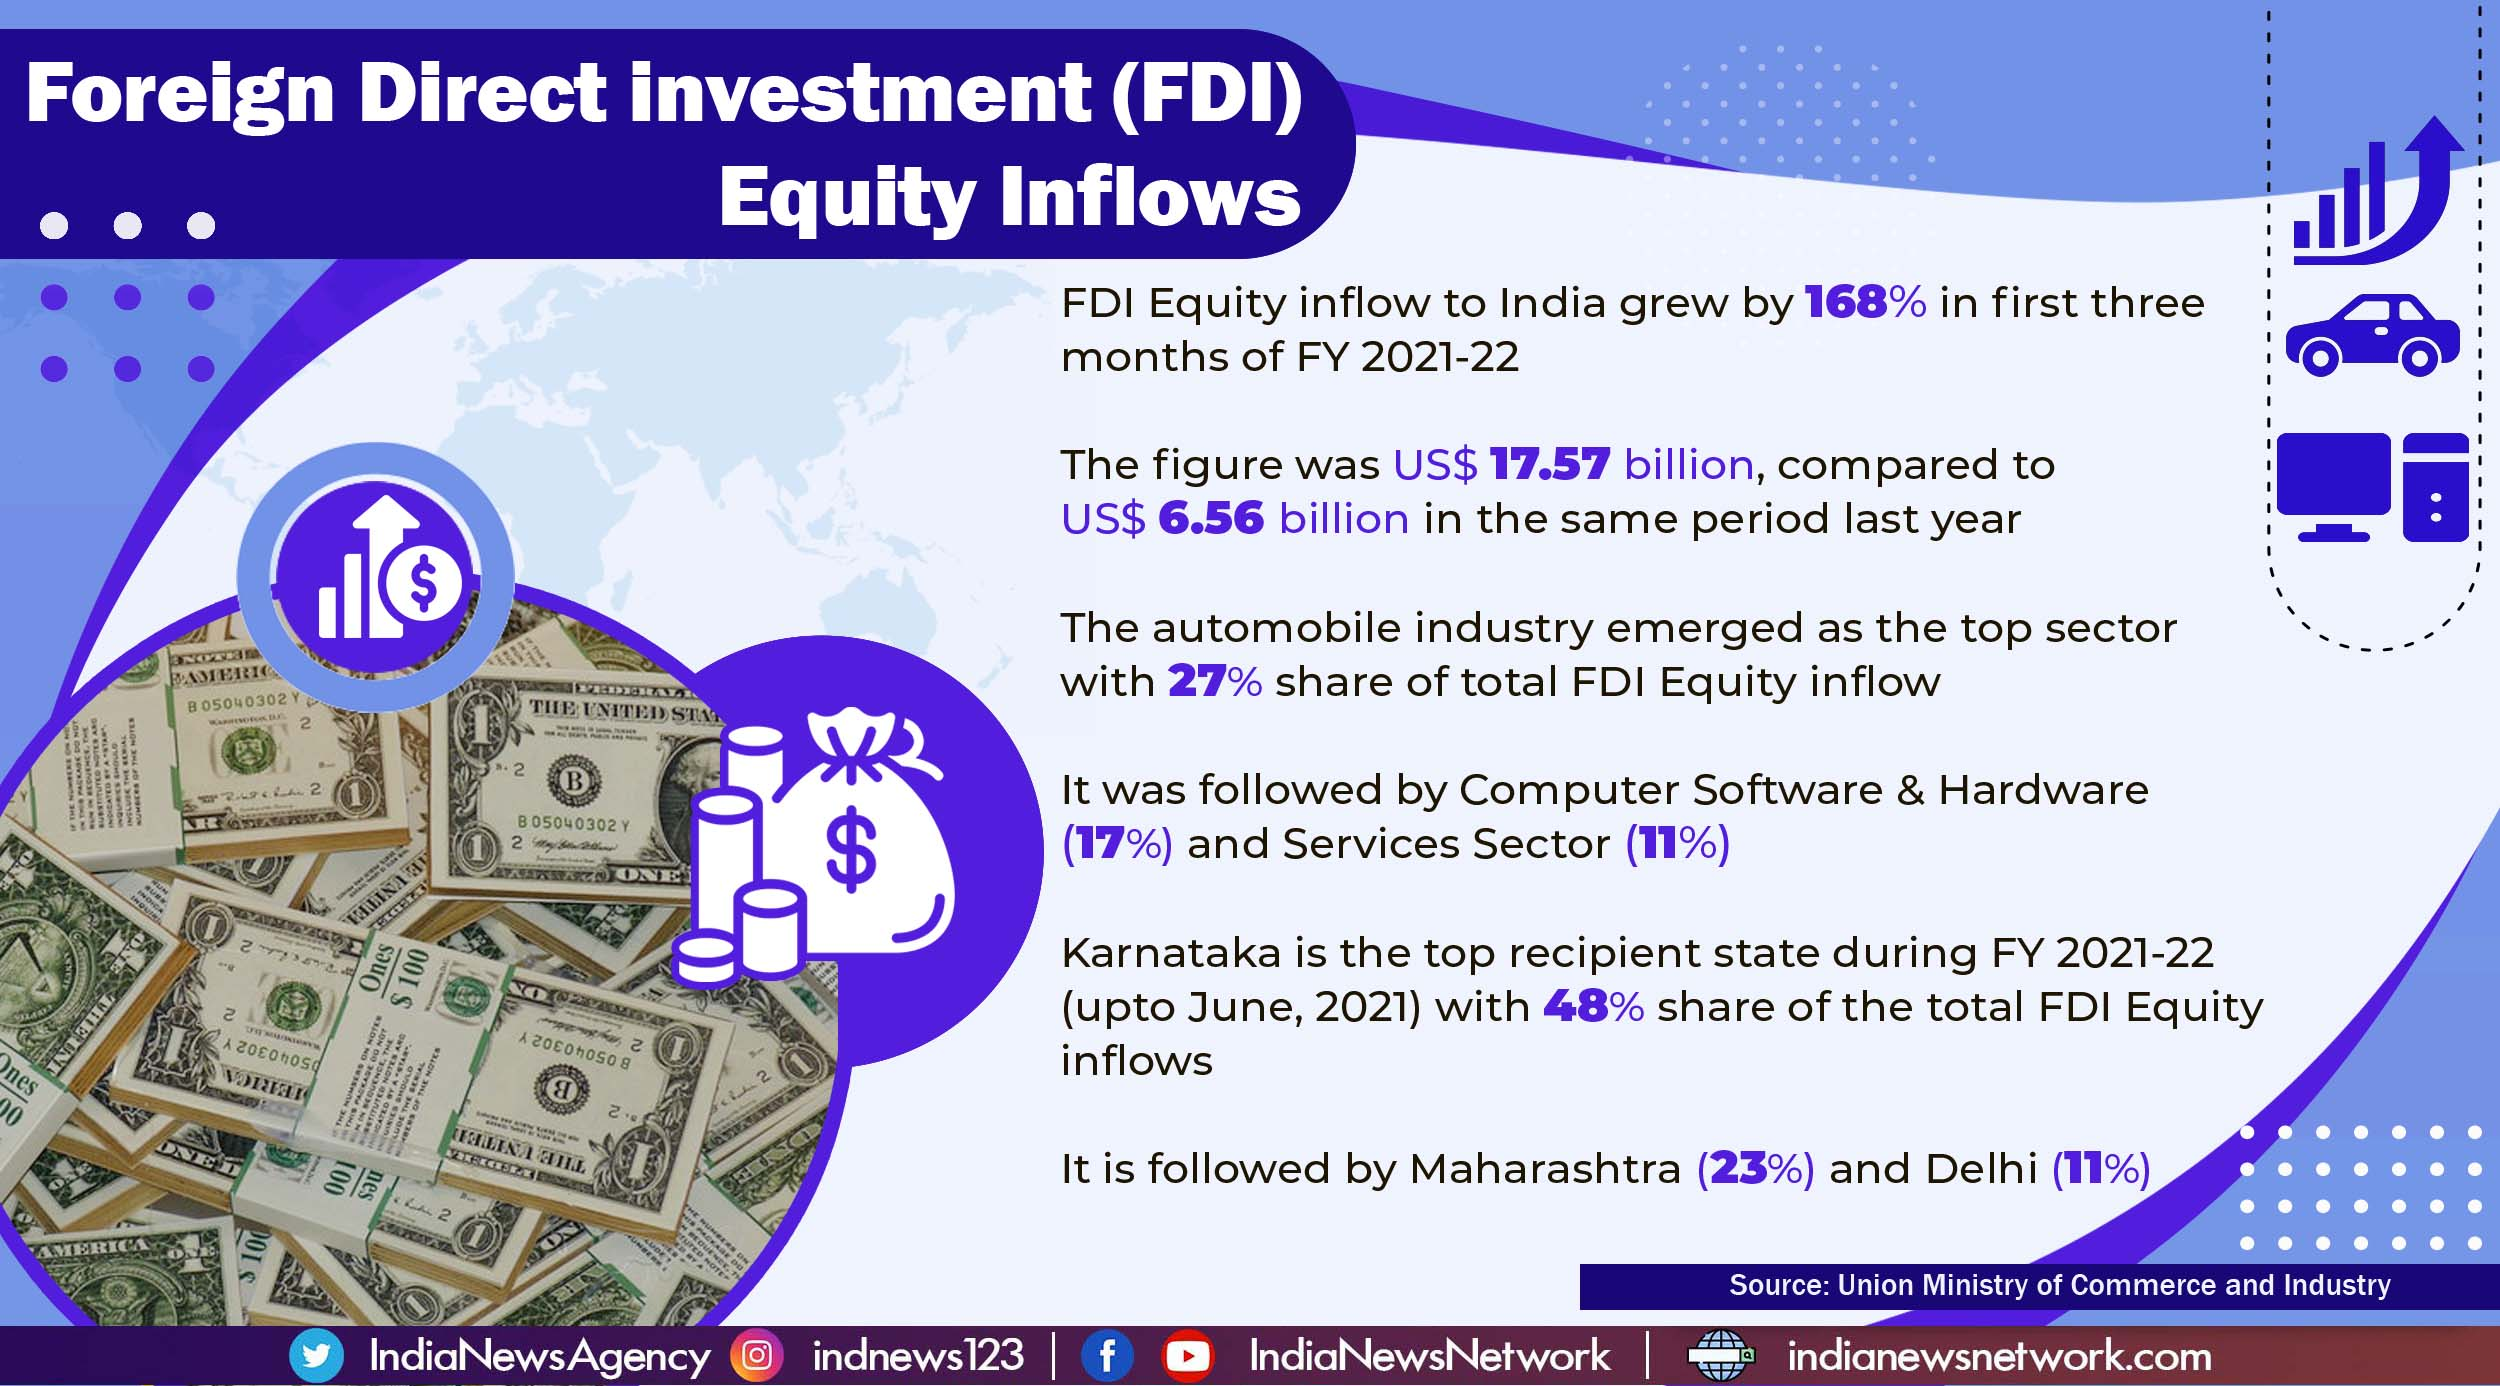 India's FDI equity inflow grew by 168% in April-June quarter